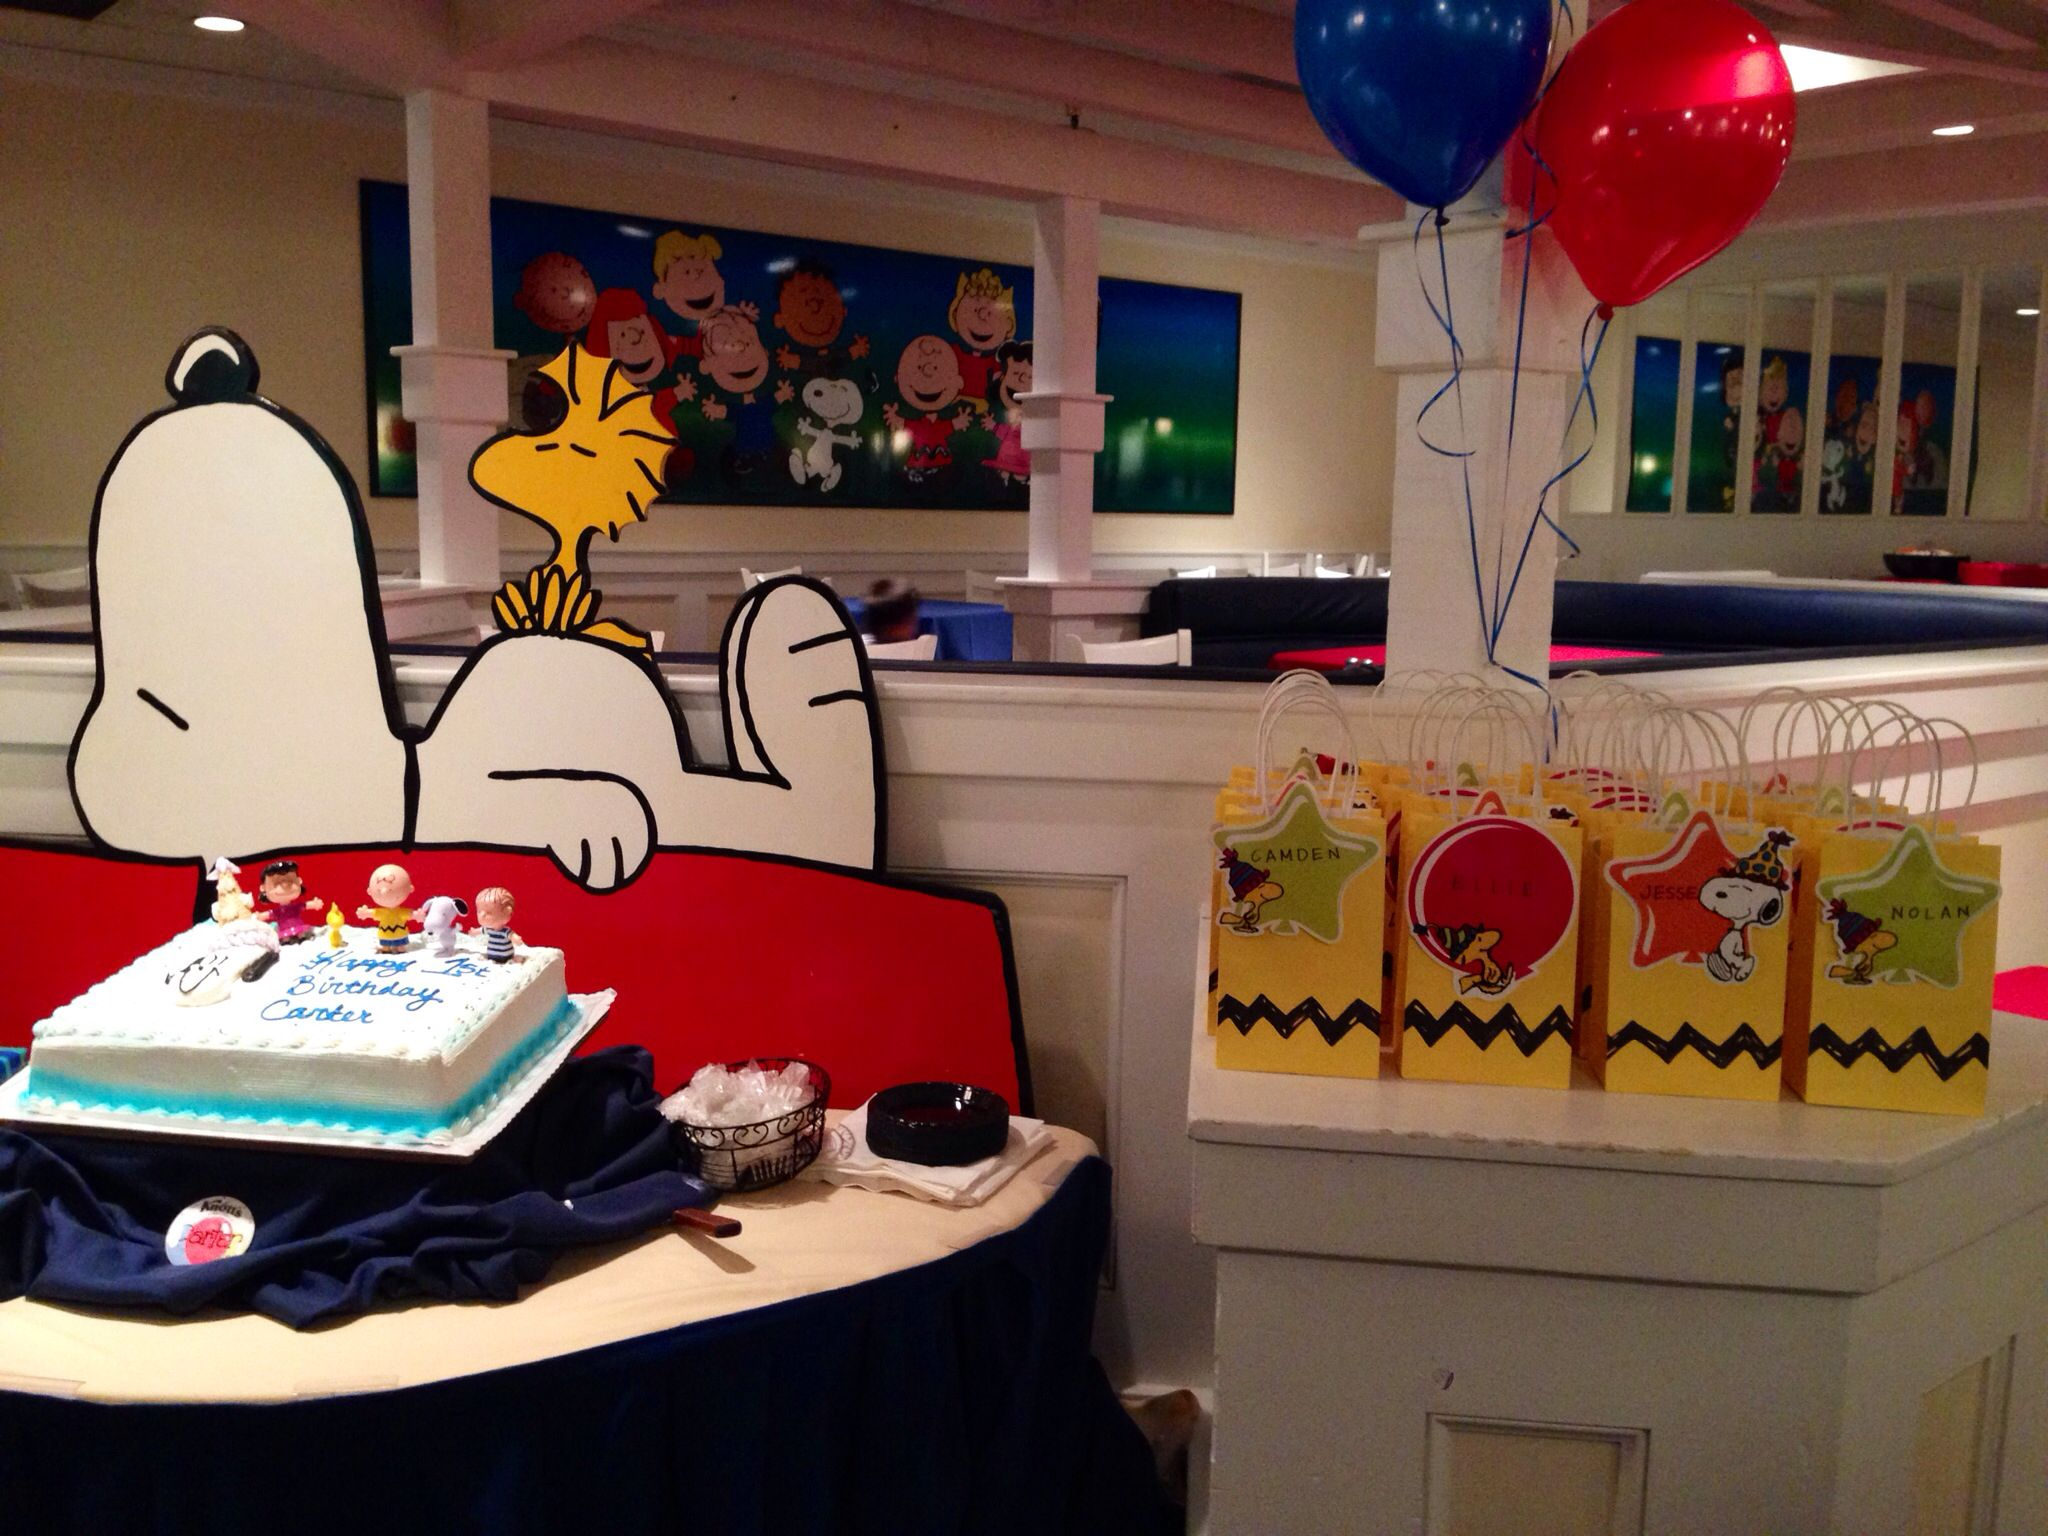 Peanuts birthday party at Snoopy's Clubhouse at Knott's Berry Farm ...